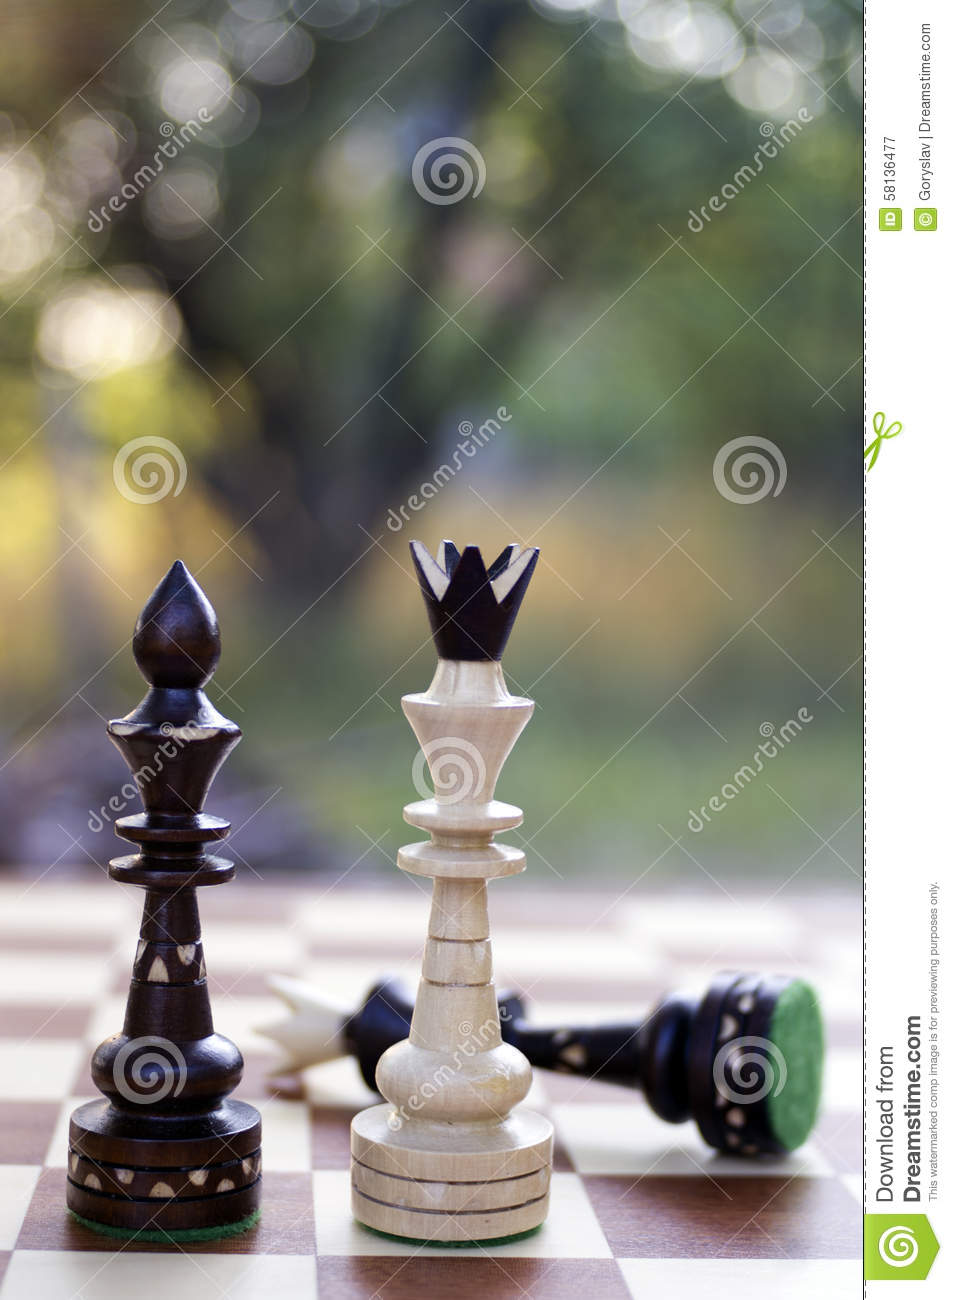 White king and black queen chess pieces